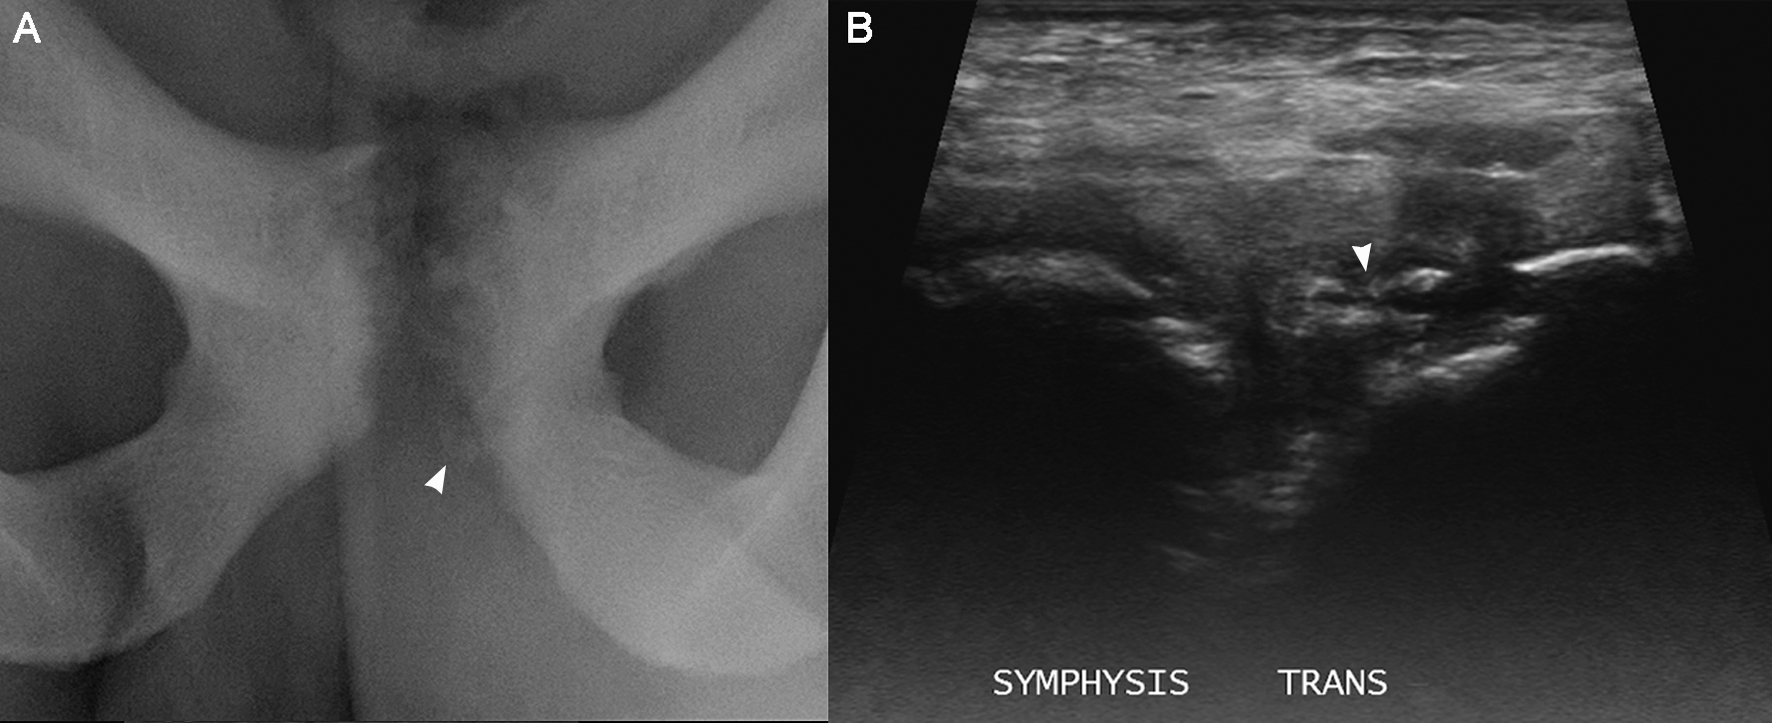 Fig 7. Marked pubic apophysitis with complicating apophyseal avulsion. 22 year old male footballer with acute-on-chronic left groin pain. (A) Xray shows an ill-defined and markedly irregular articular cortical contour along both sides of the symphysis pubis with generalised subarticular lucency that is more extensive and most pronounced on the left. The lowr left-sided secondary centre of pubic ossification has avulsed and displaced slightly (arrowhead). (B) Transverse ultrasound image obtained at mid-to-lower symphysis pubis level shows the avulsed apophyseal fragment (arrowhead) with anechoic fracture line at the lateral aspect of wide subjacent physeal plate and an irregular metaphyseal cortex.